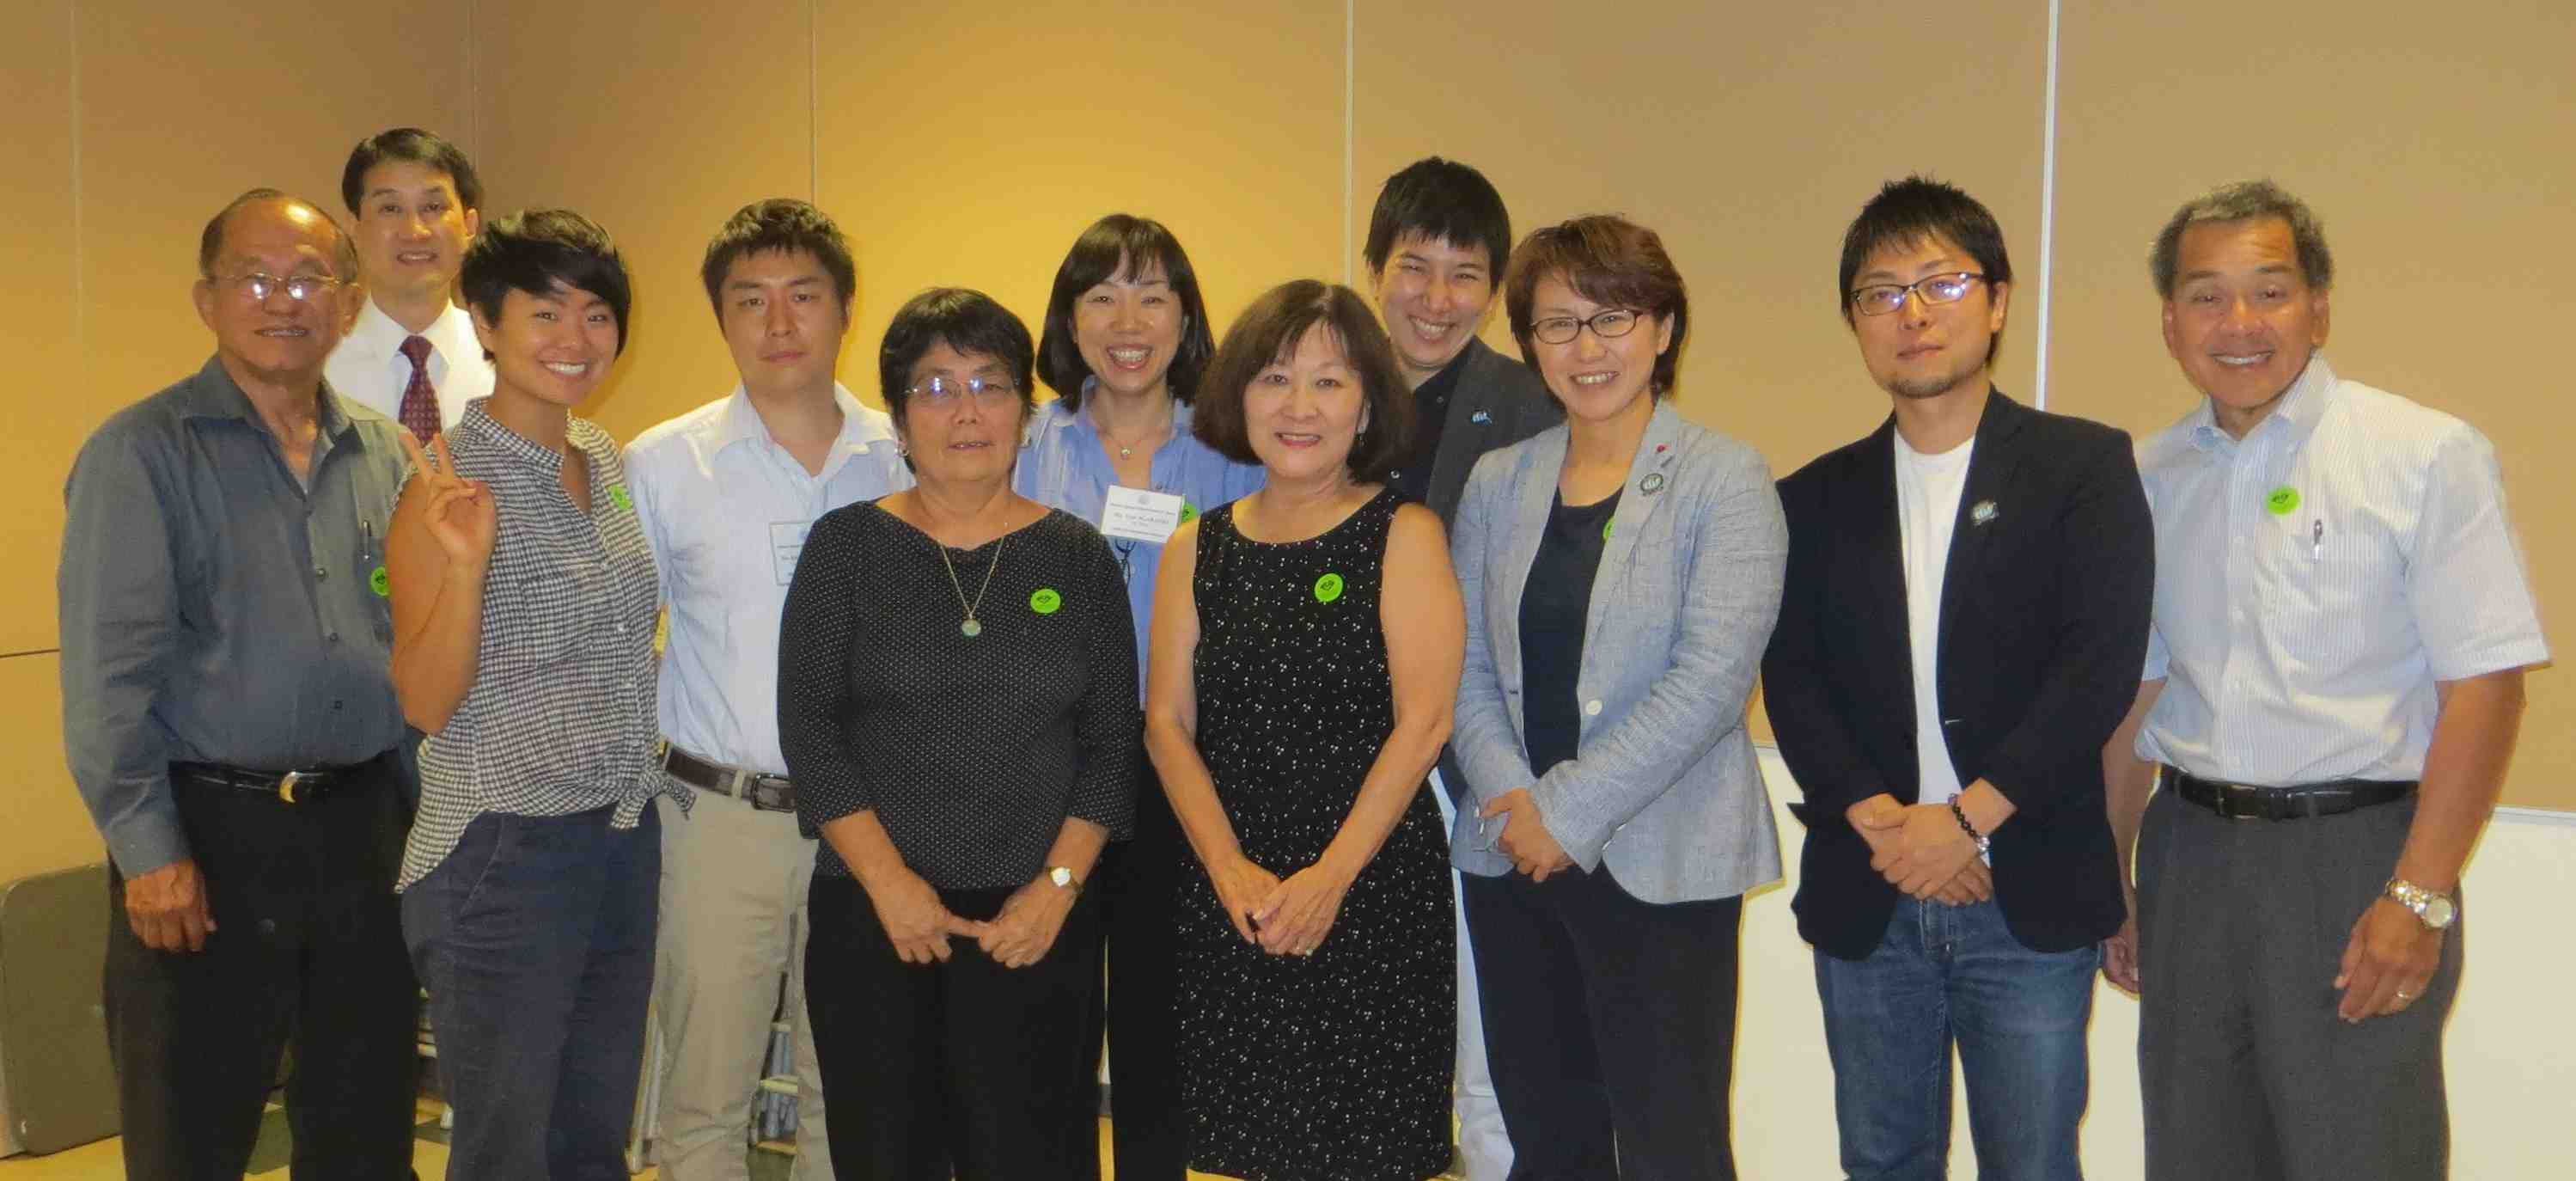 An LGBTQ delegation from Japan met with Okaeri representatives (from left) Harold Kameya, Alex H. Fukui, traci ishigo; (front and center) Ellen Kameya, Marsha Aizumi; (right) Rev. Mark Nakagawa.